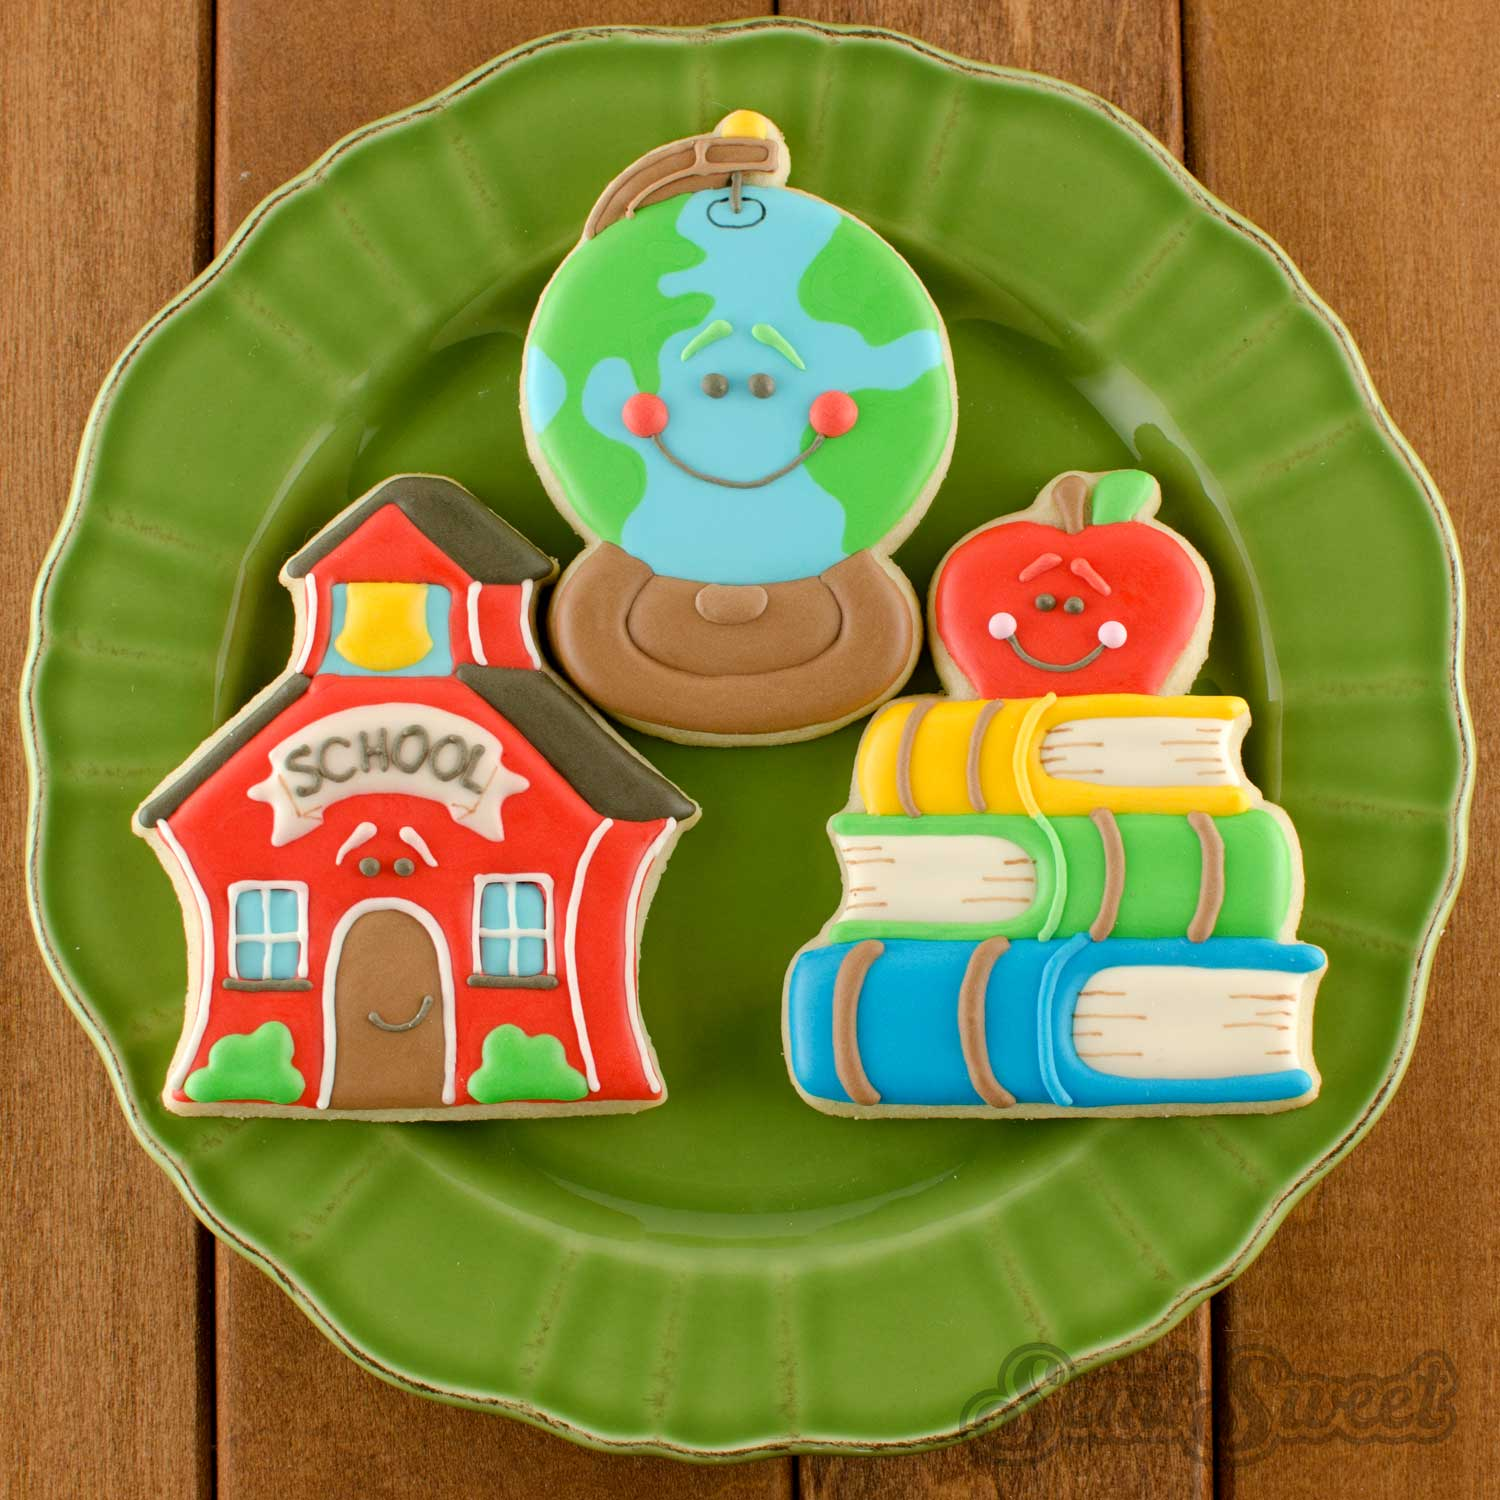 schoolhouse globe book cookies by Semi Sweet Designs